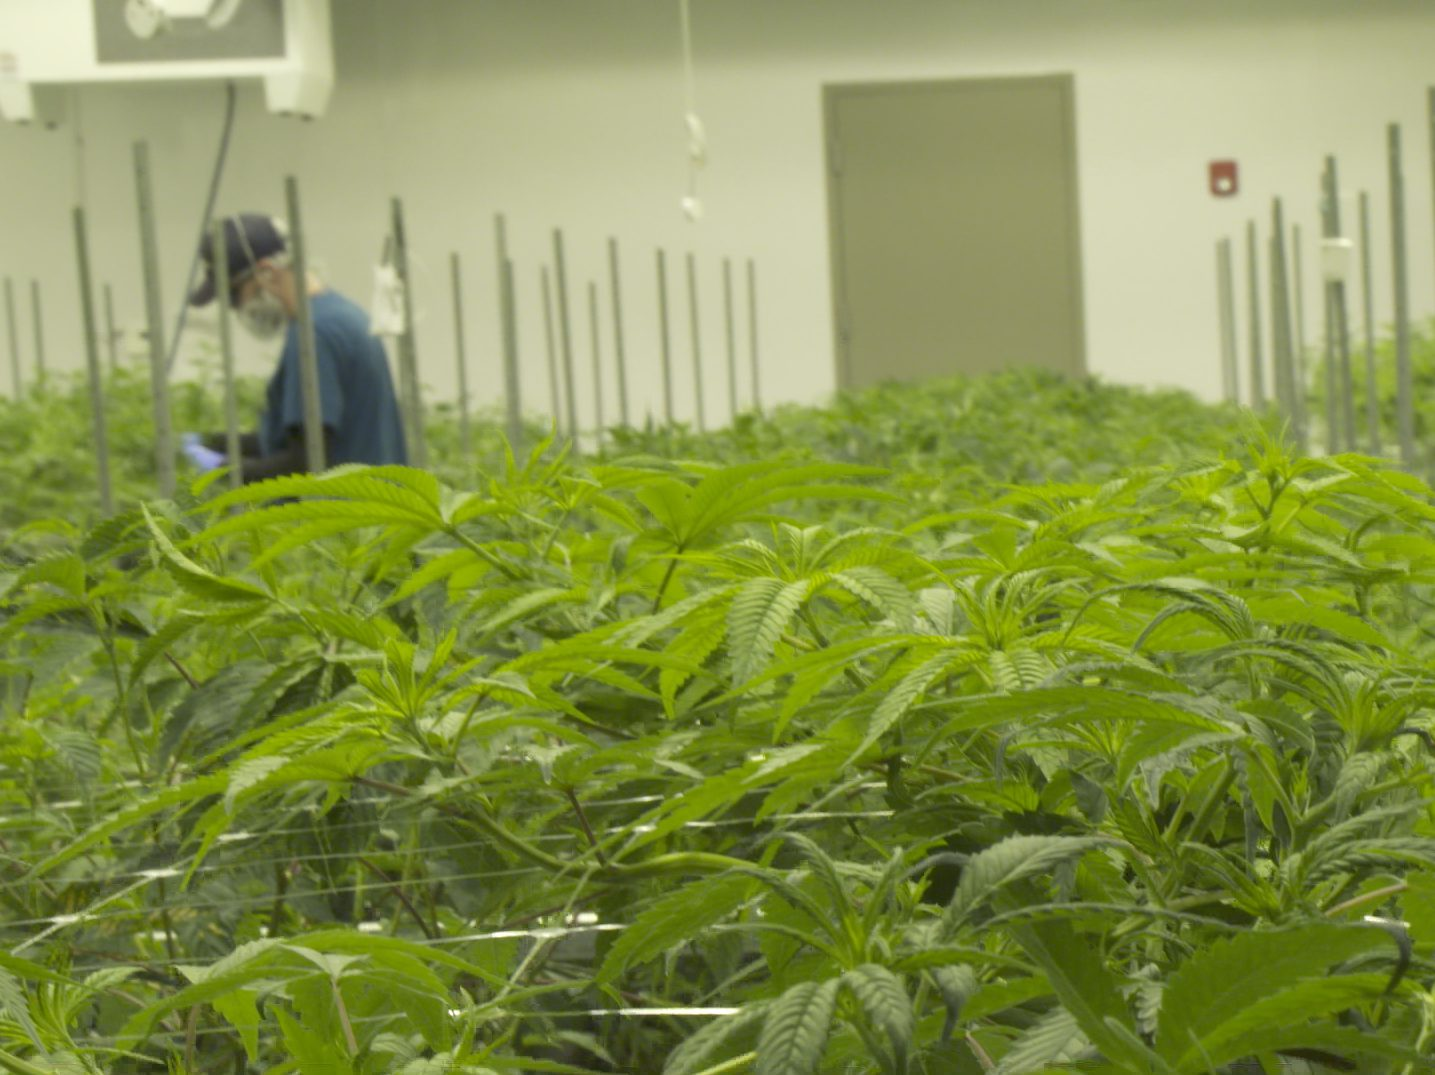 Cresco Labs' cannabis cultivation facility in Joliet.